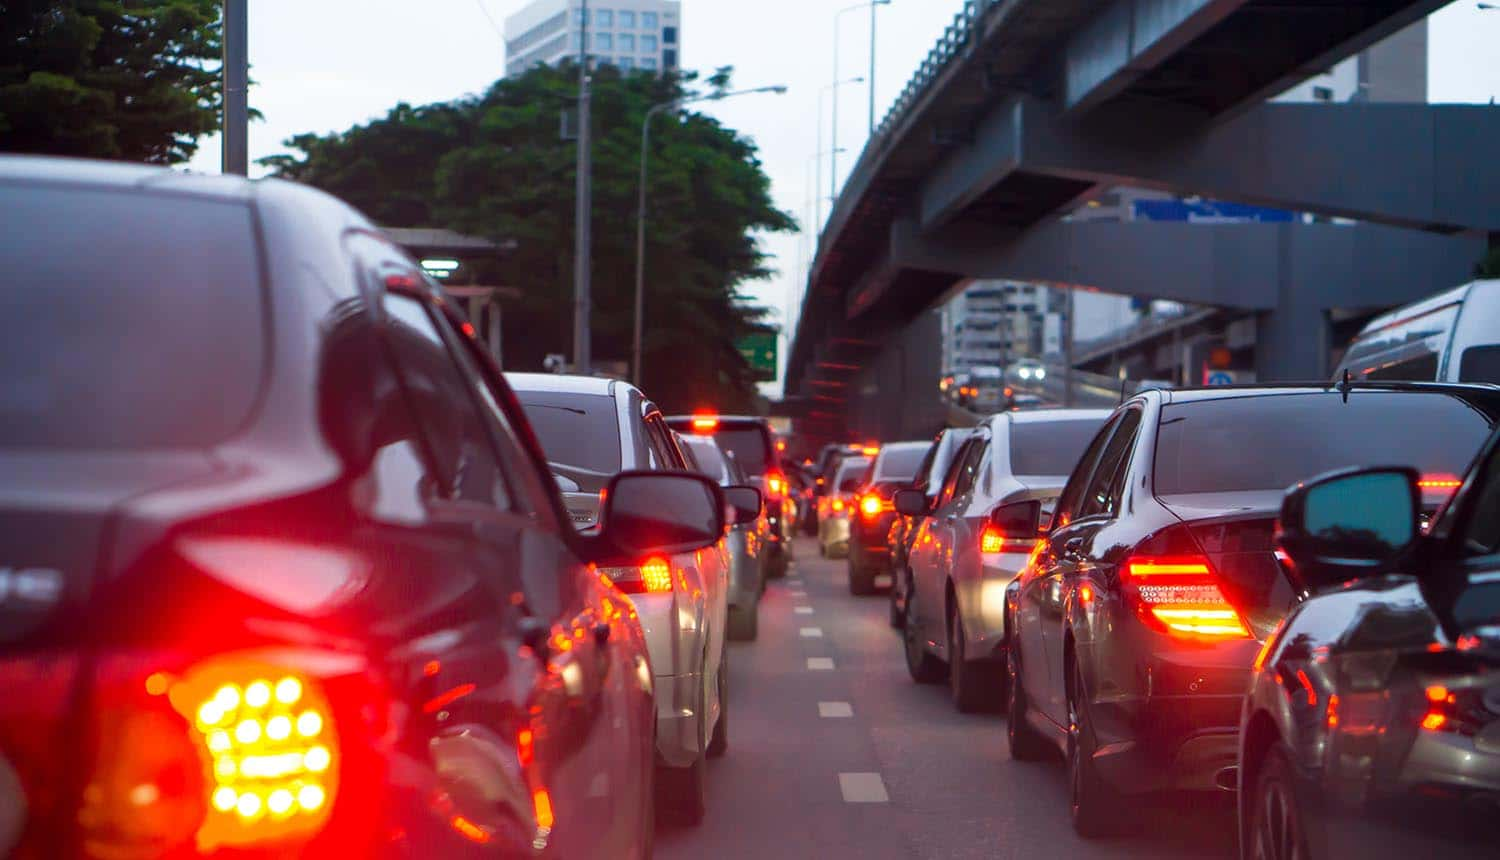 Image of cars in a traffic jam representing uber breach and how consumers will ever learn or care